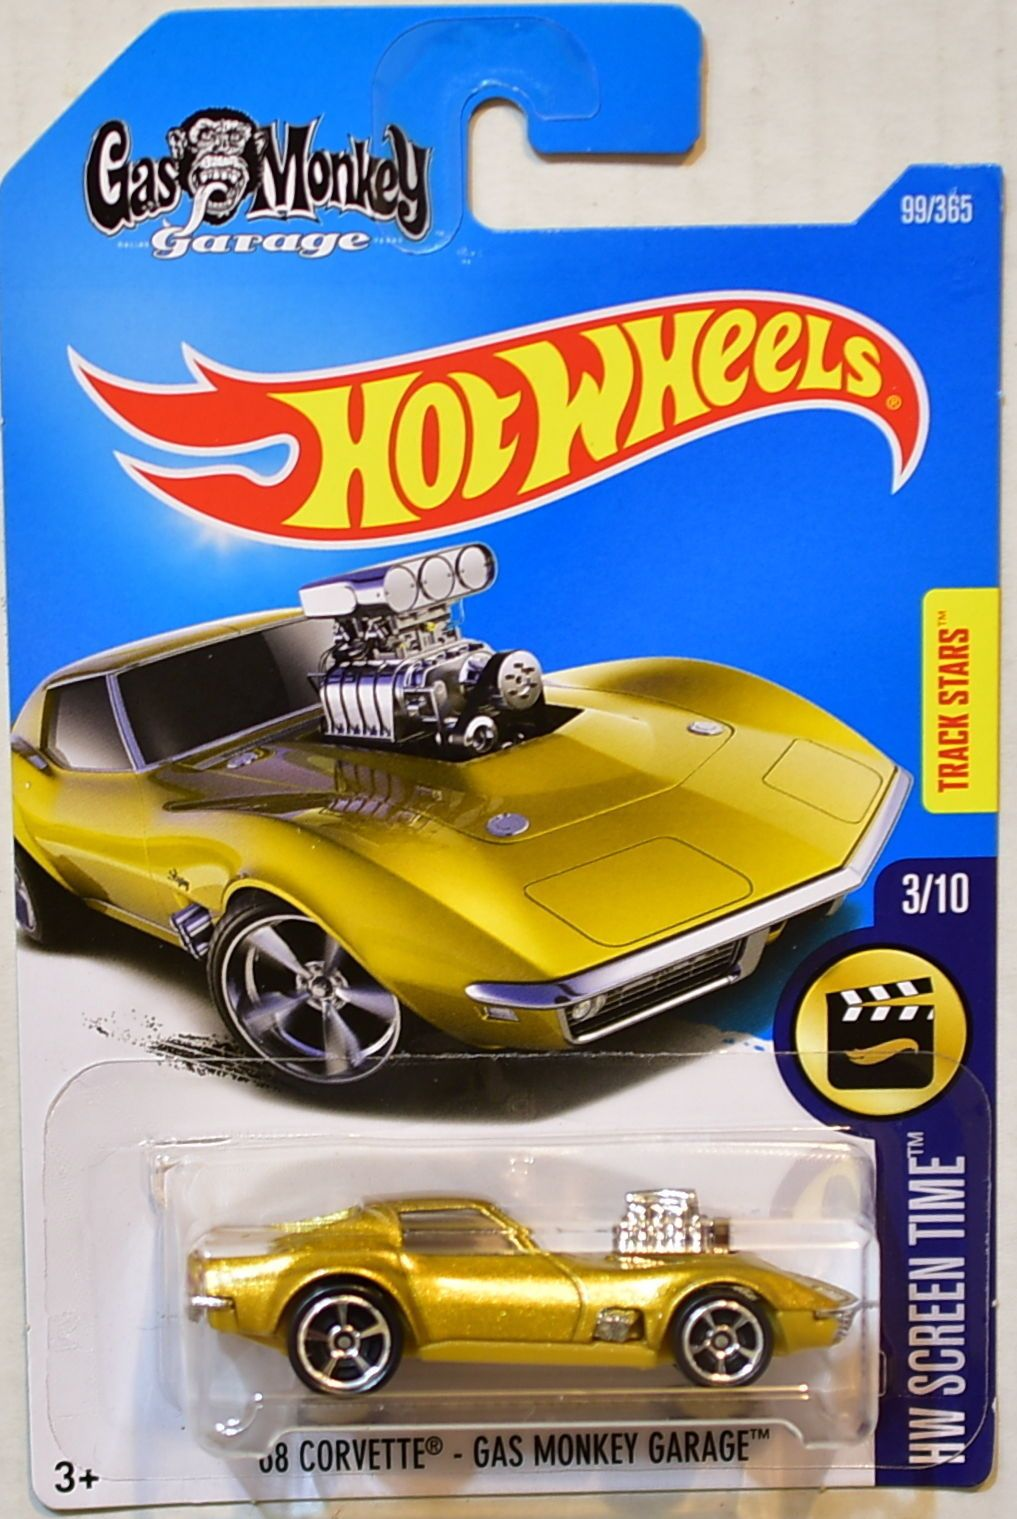 Gas monkey garage gas monkey pinterest garage monkey and gas -  68 Corvette Gas Monkey Garage Model Cars Hobbydb